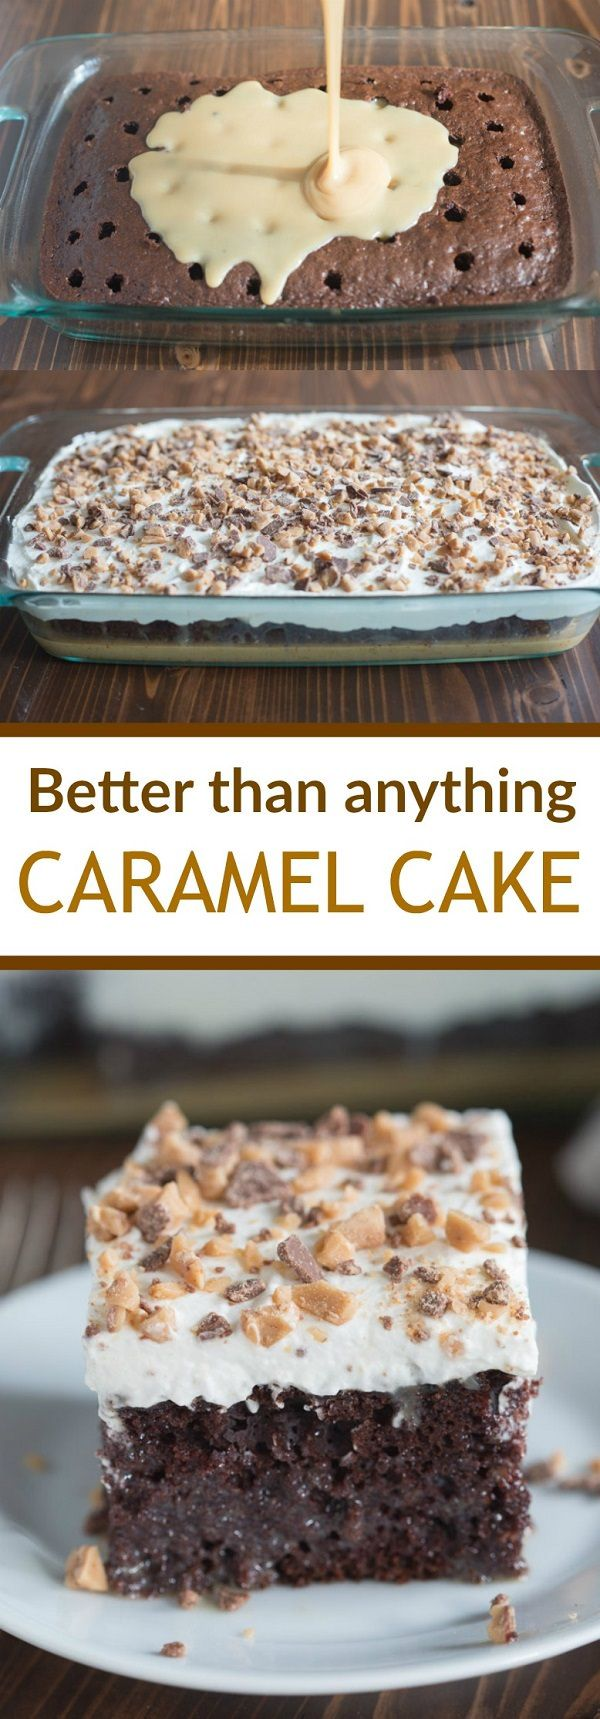 Prepare this cake with homemade caramel sauce and fresh whipped cream. It tastes so good that it'll become one of your favorite cakes! Better than Anything Cake made with homemade caramel sauce and fresh whipped cream First, you just can't go wrong making this recipe with homemade caramel sauce! It's amazing with the homemade caramel! …